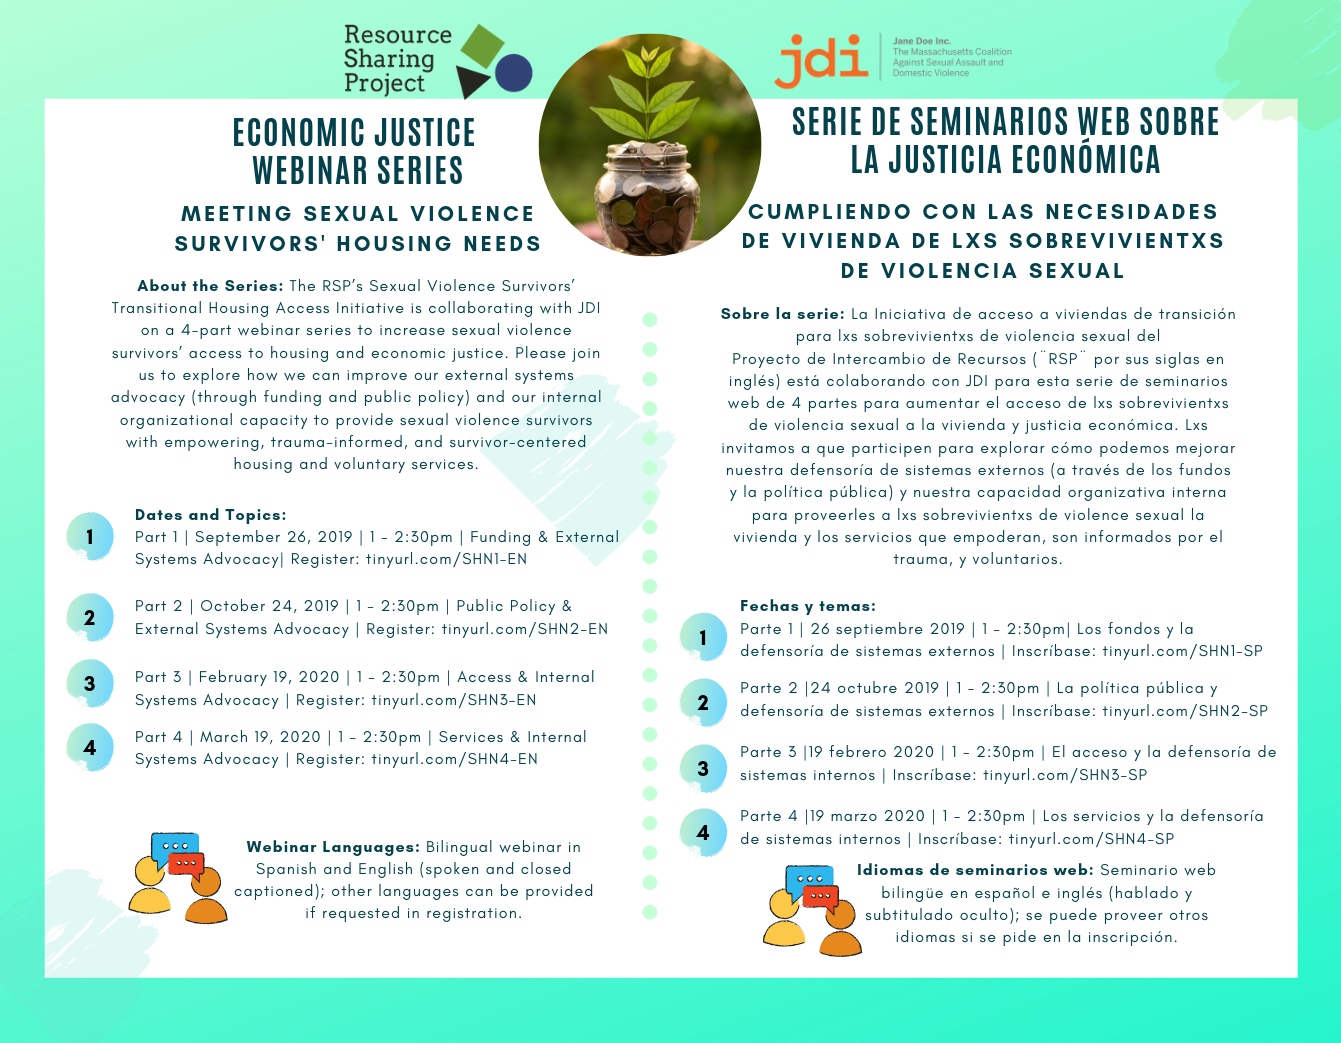 Flyer for Resource Sharing Project/Jane Doe Inc. Economic Justice Webinar series. Text included below in English and Spanish.